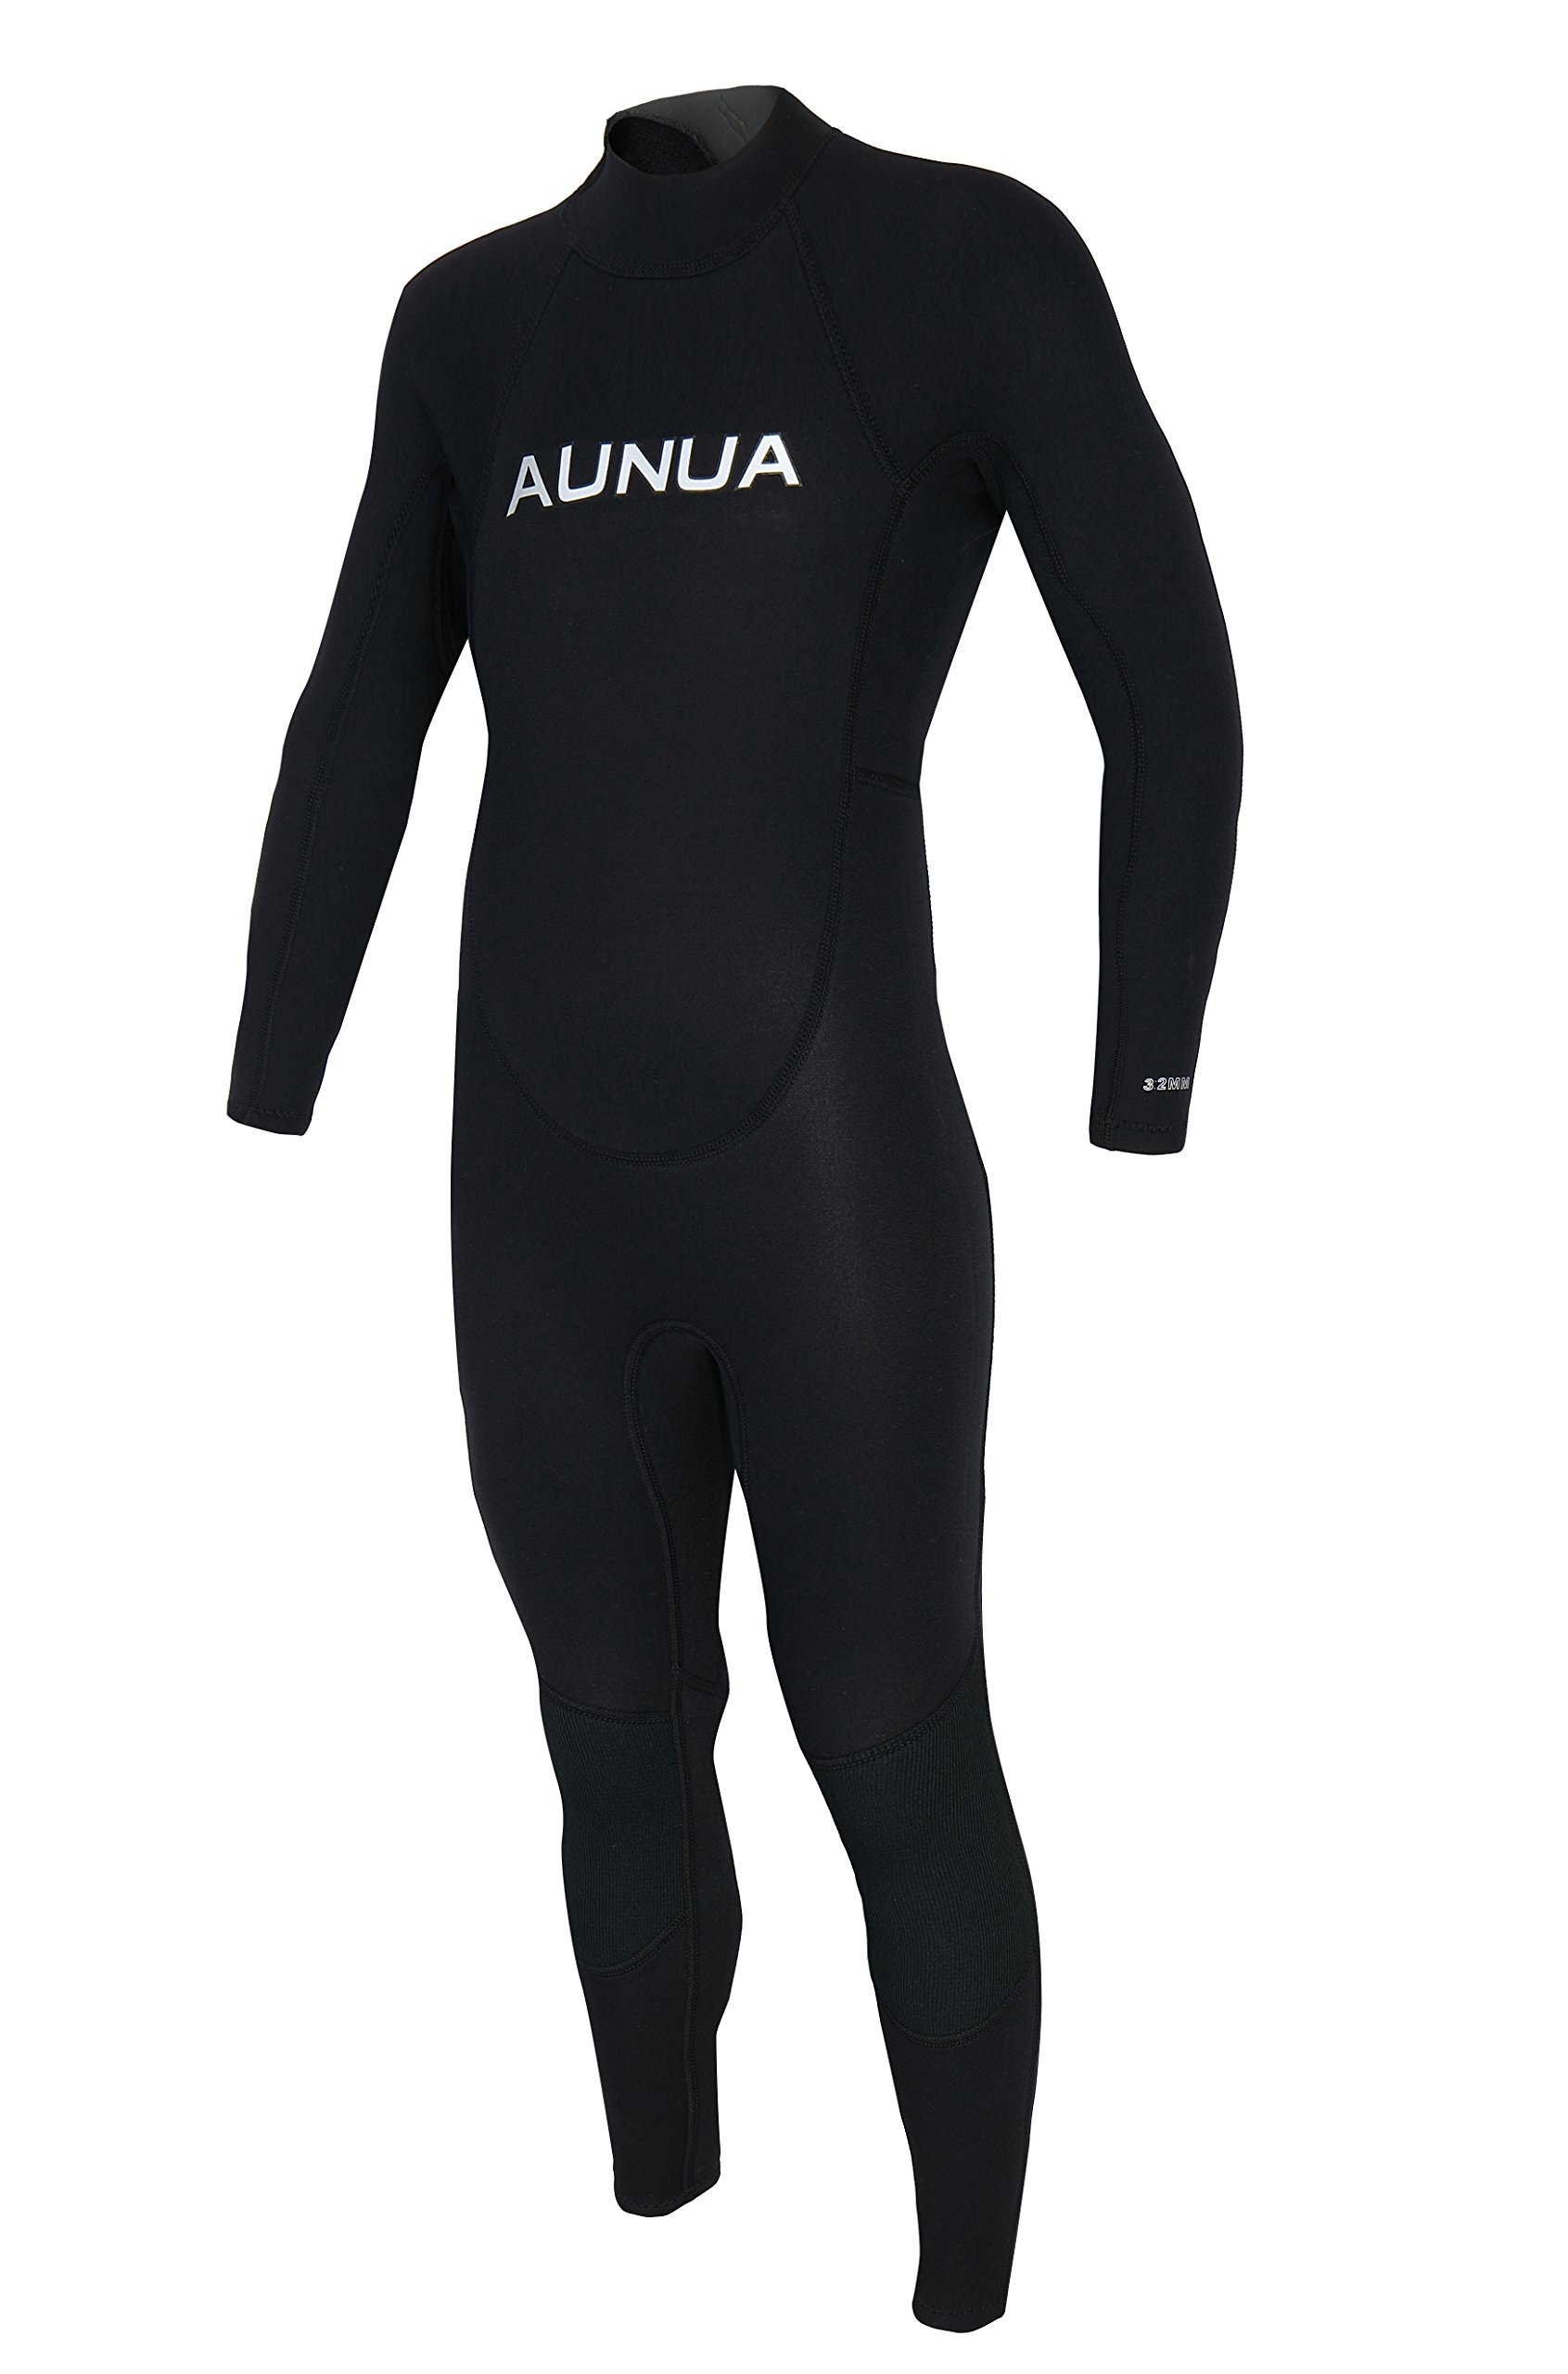 Aunua Youth 3/2mm Neoprene Wetsuits for Kids Full Wetsuit Swimming Suit Keep Warm(7031 Black 6) by Aunua